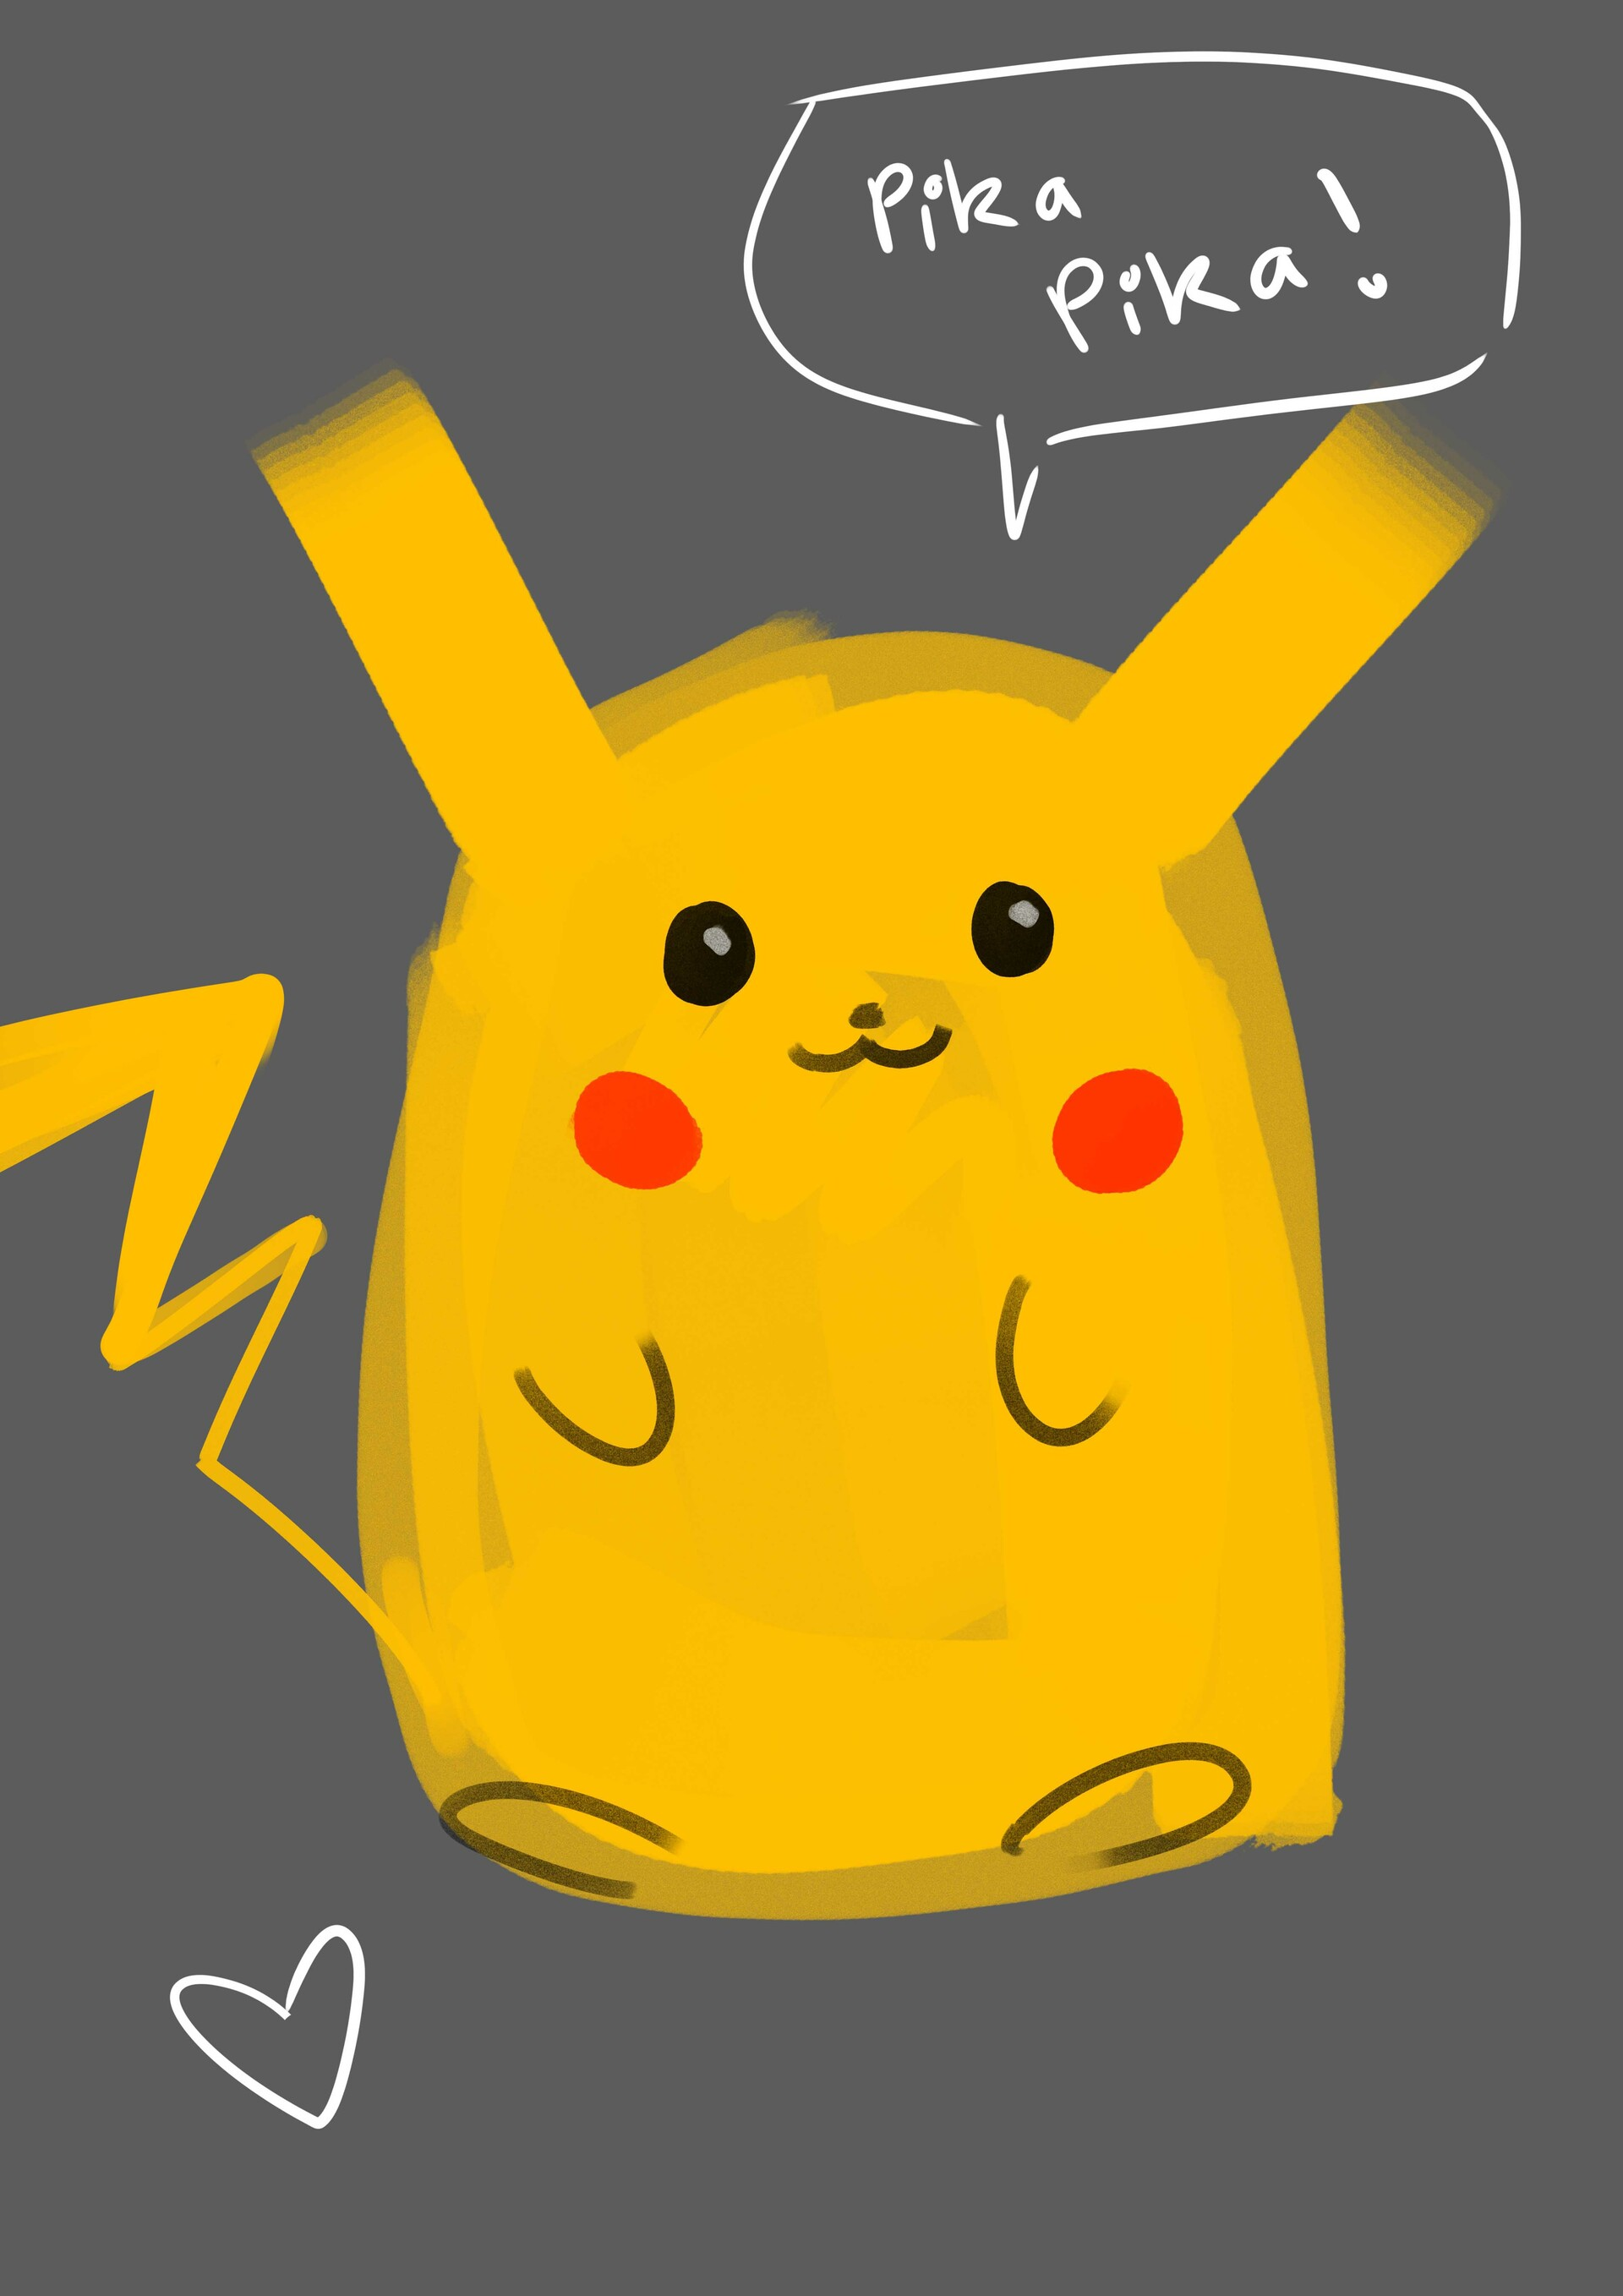 Pikachu before the weight loss